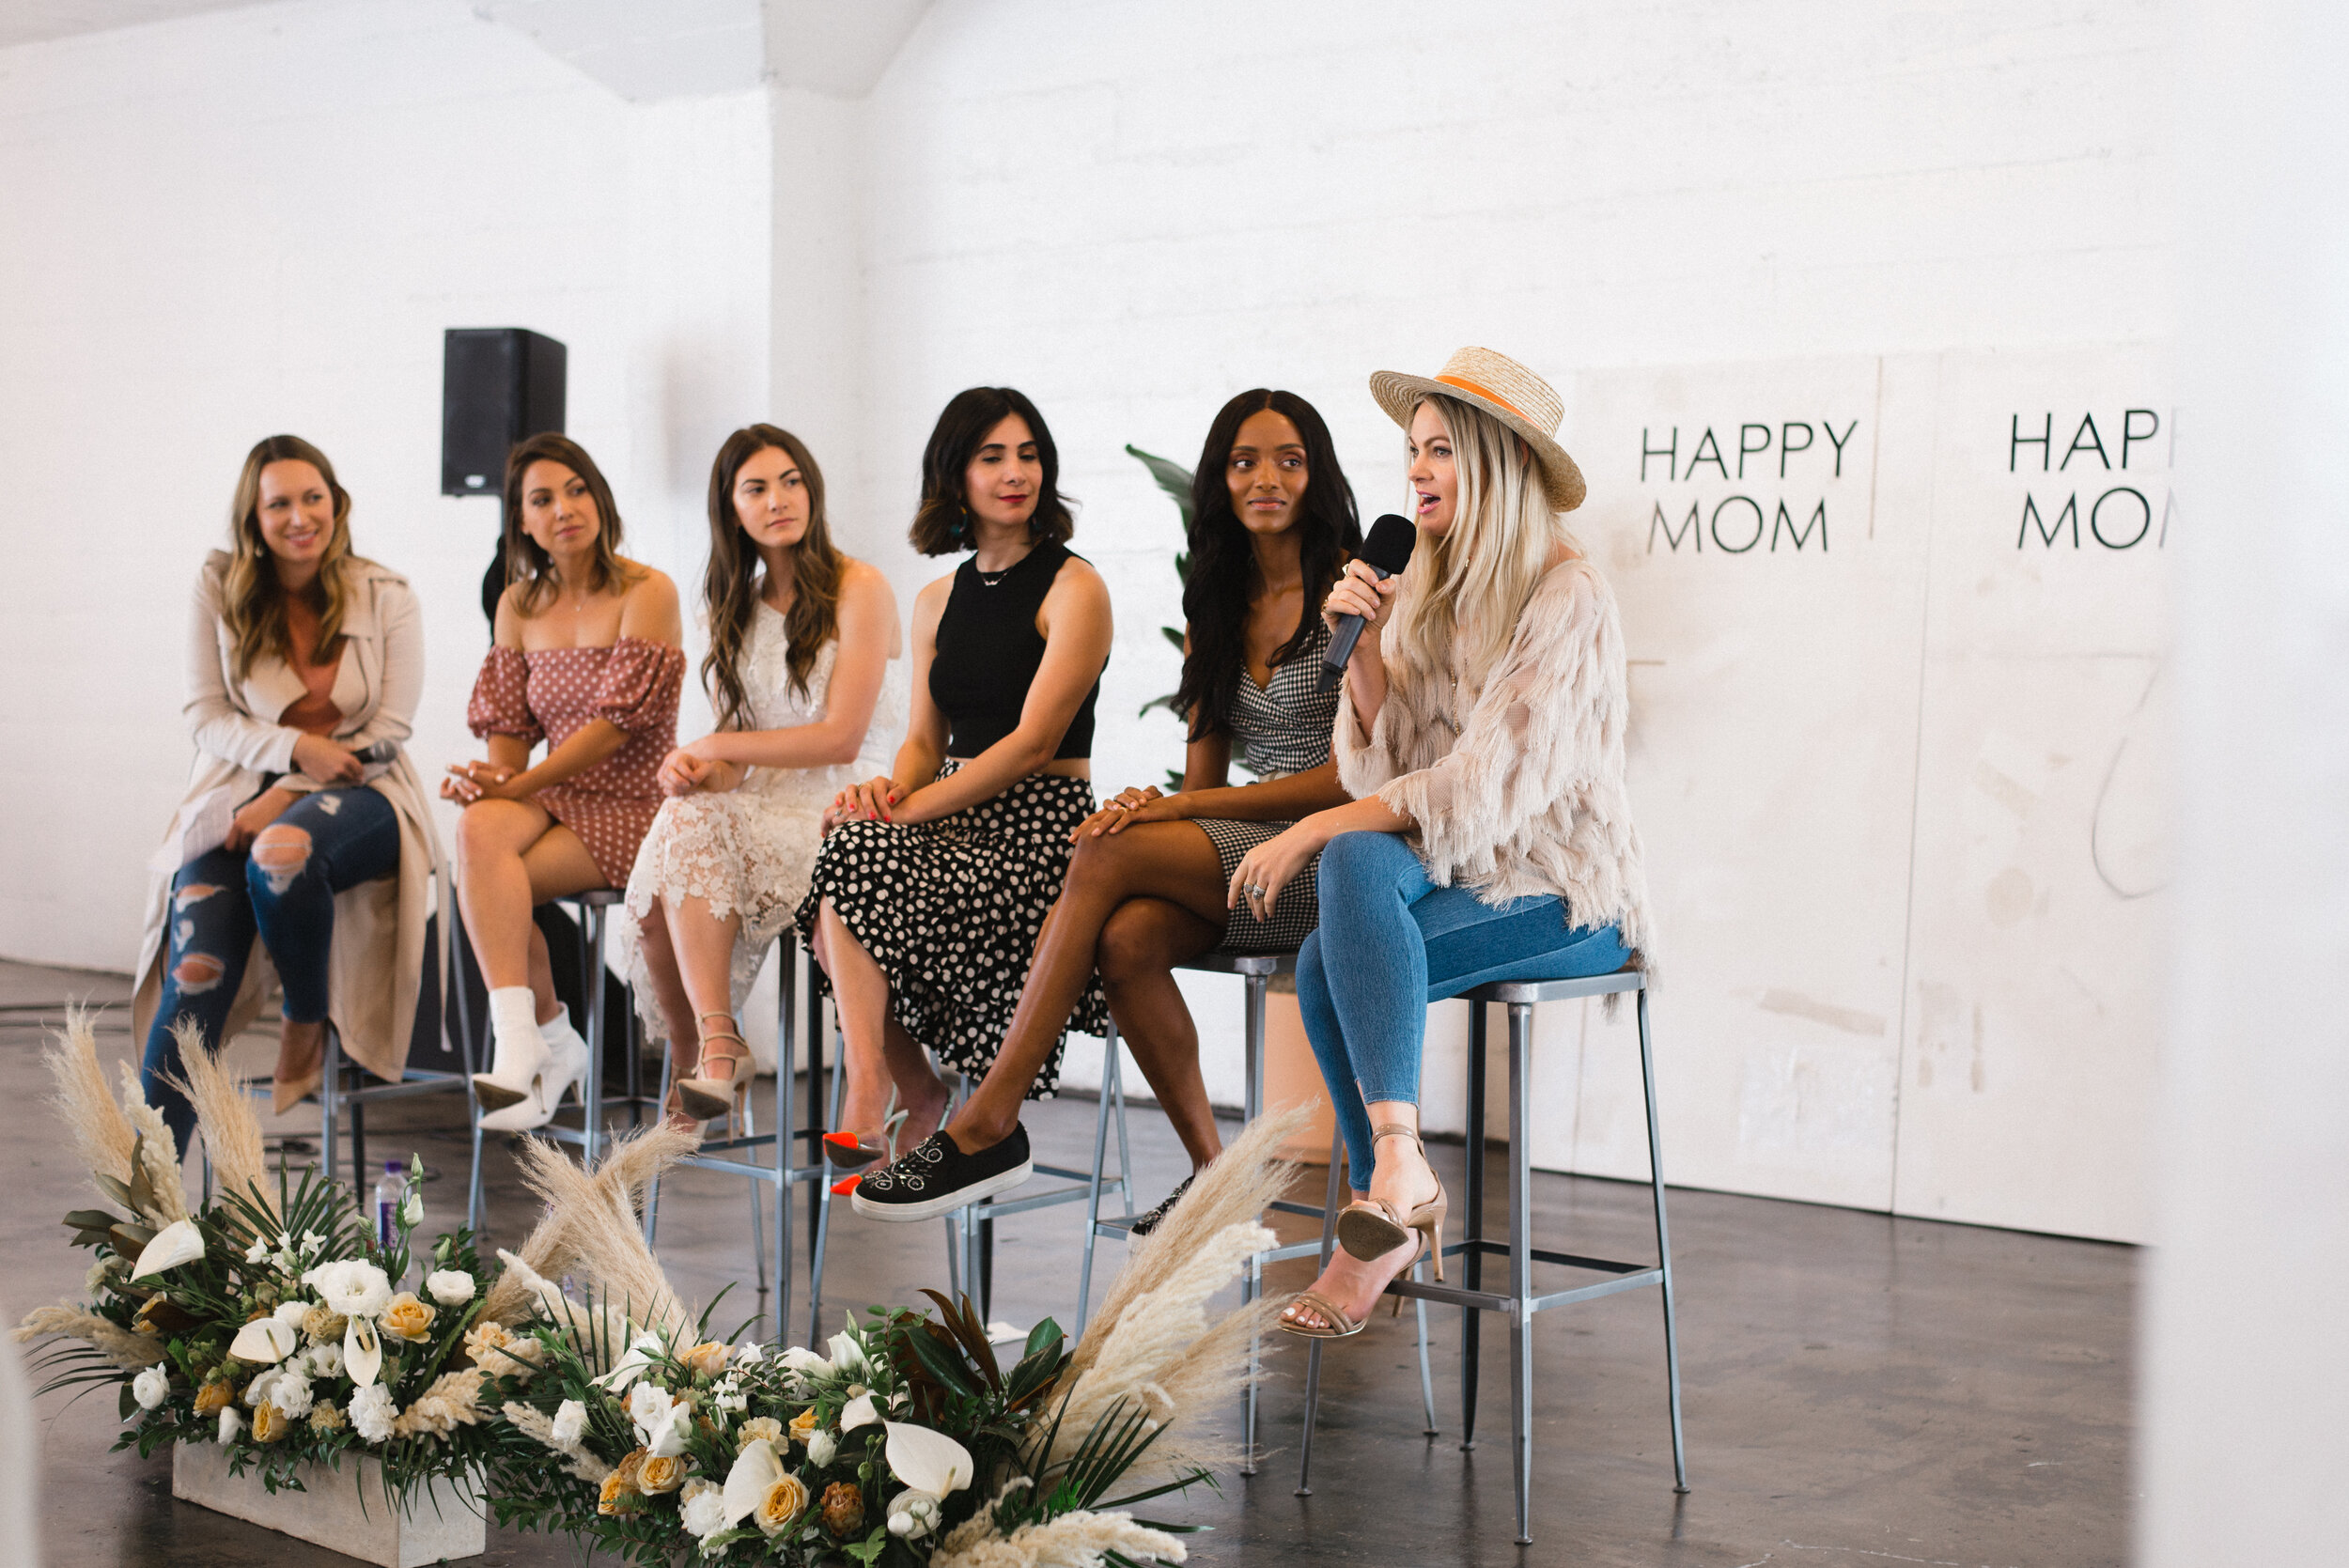 Caitlin Crosby of the Giving Keys speaking at Happy Mom Conference Year One (2018)